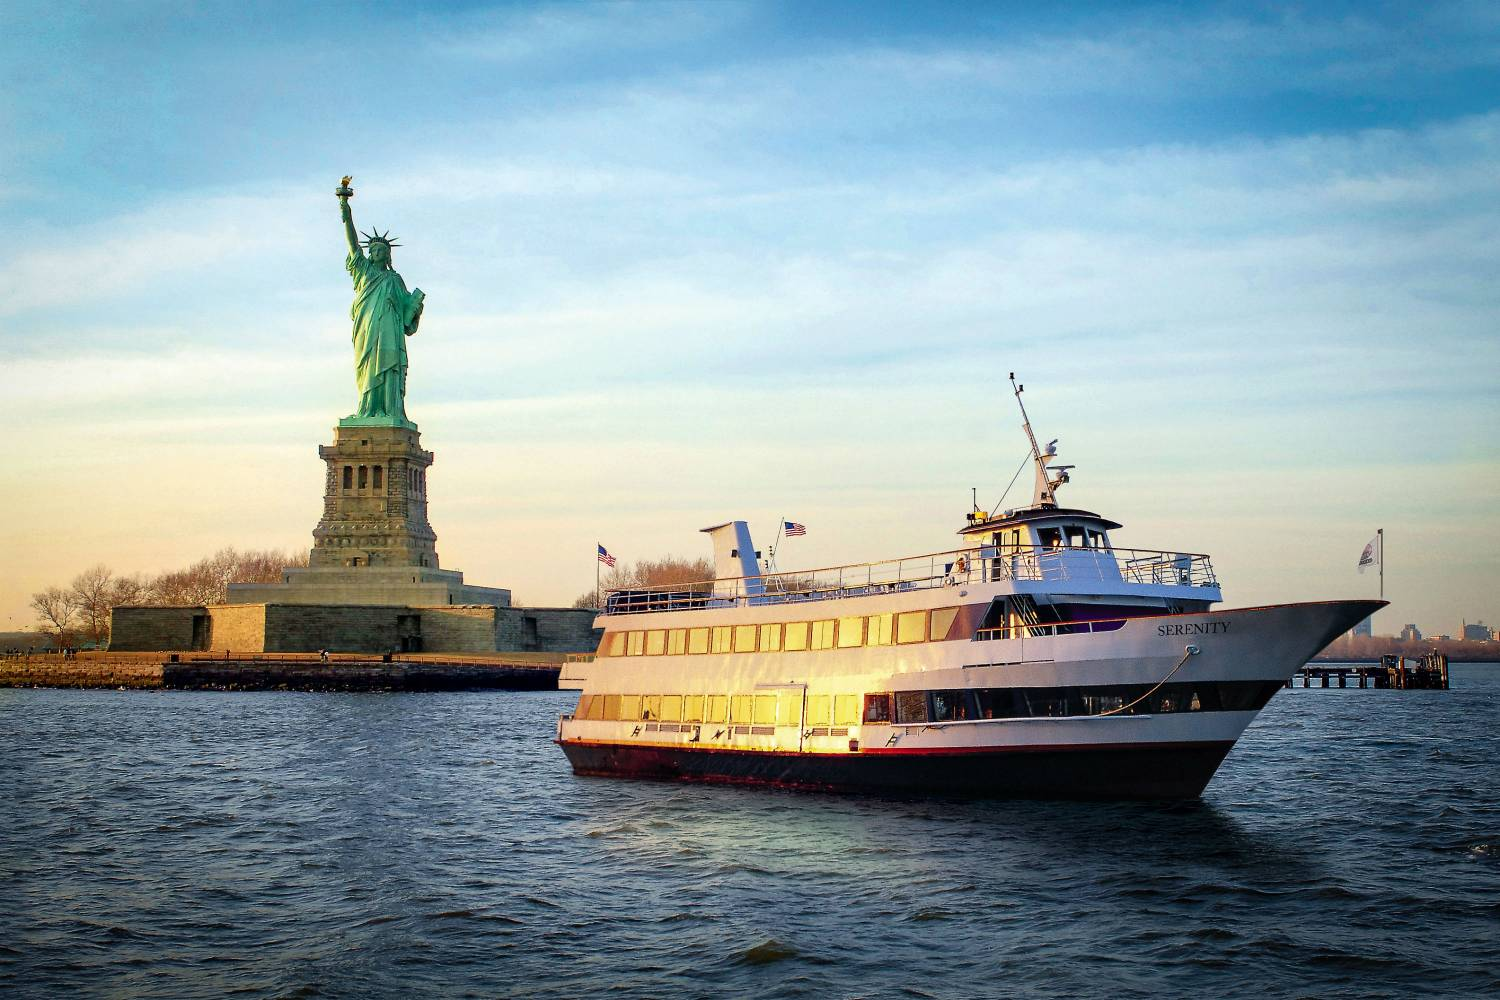 Hornblower serenity with view of the statue of liberty